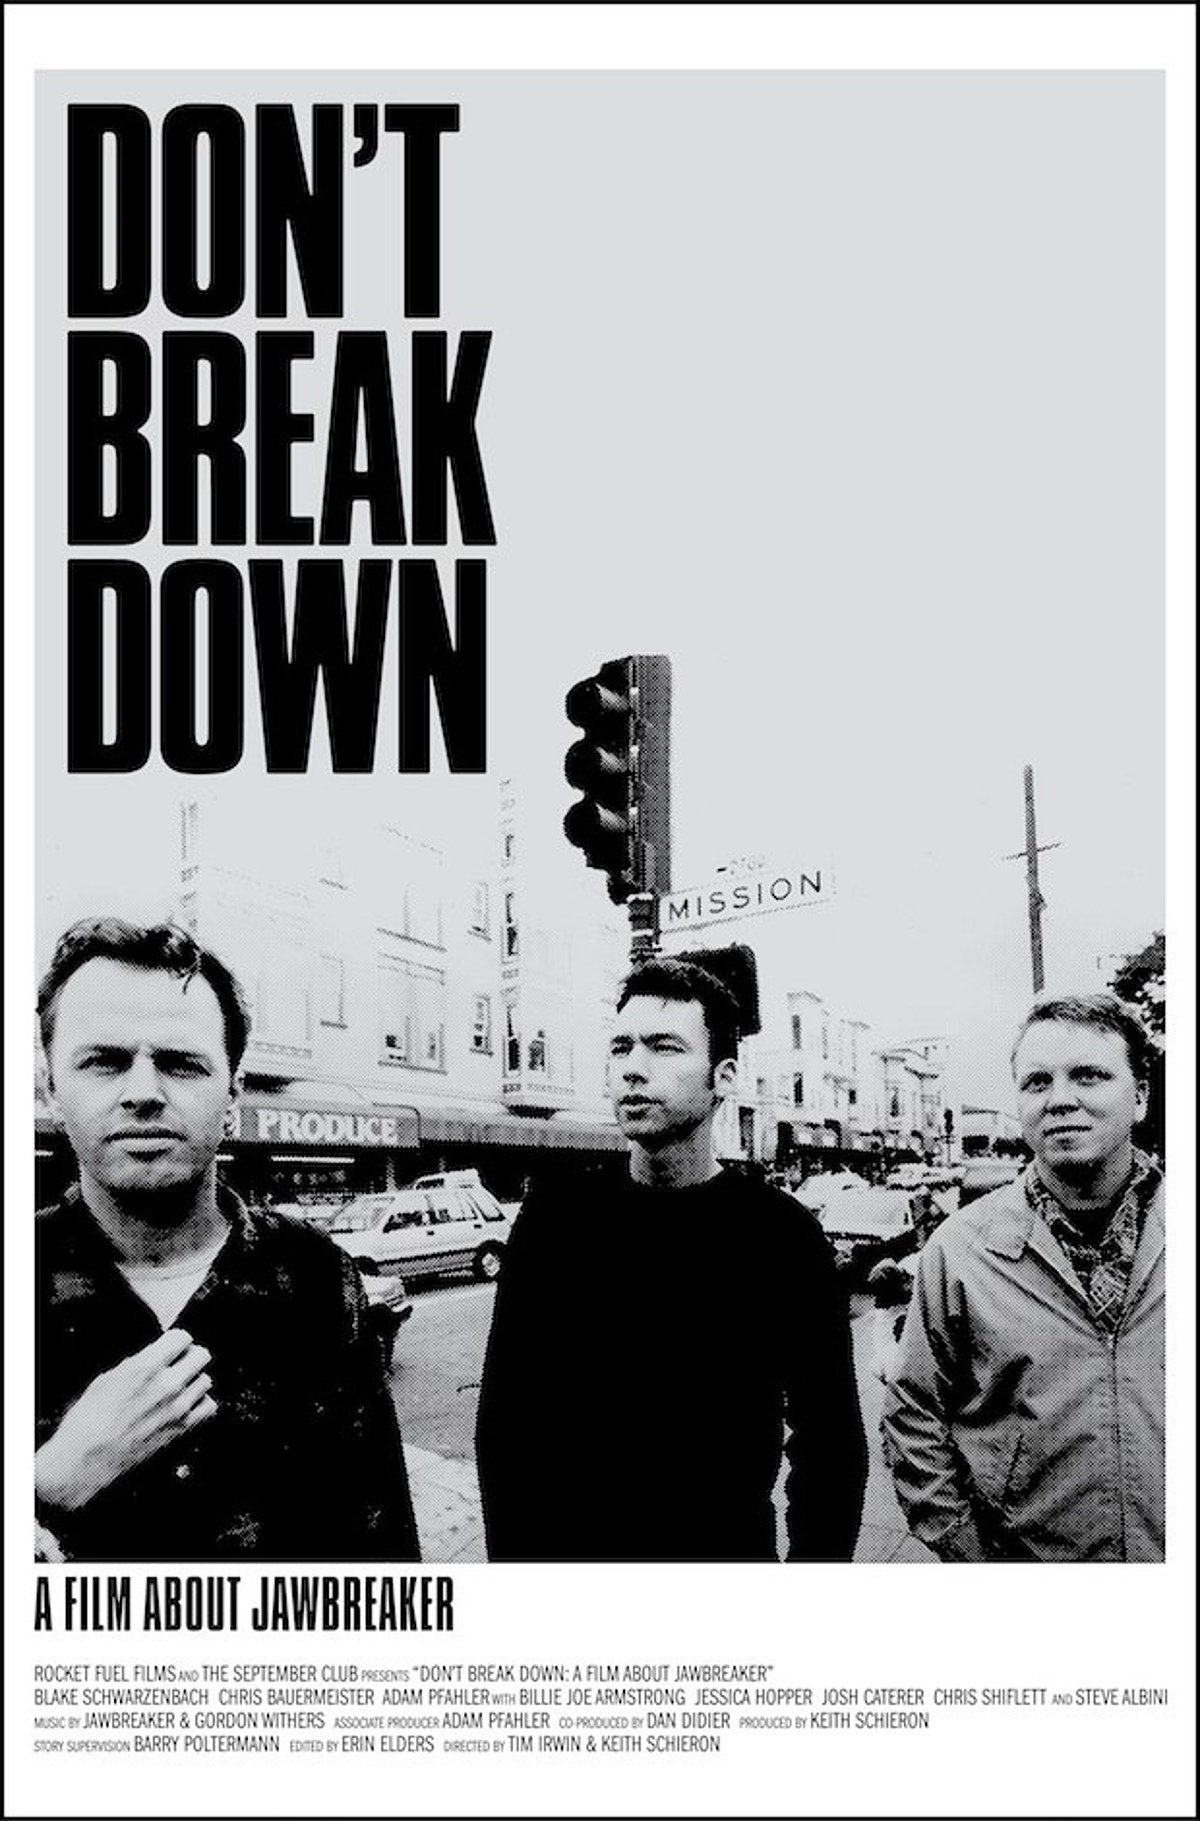 Jawbreaker doc getting a wide release; Gordon Withers preps cello JB covers LP